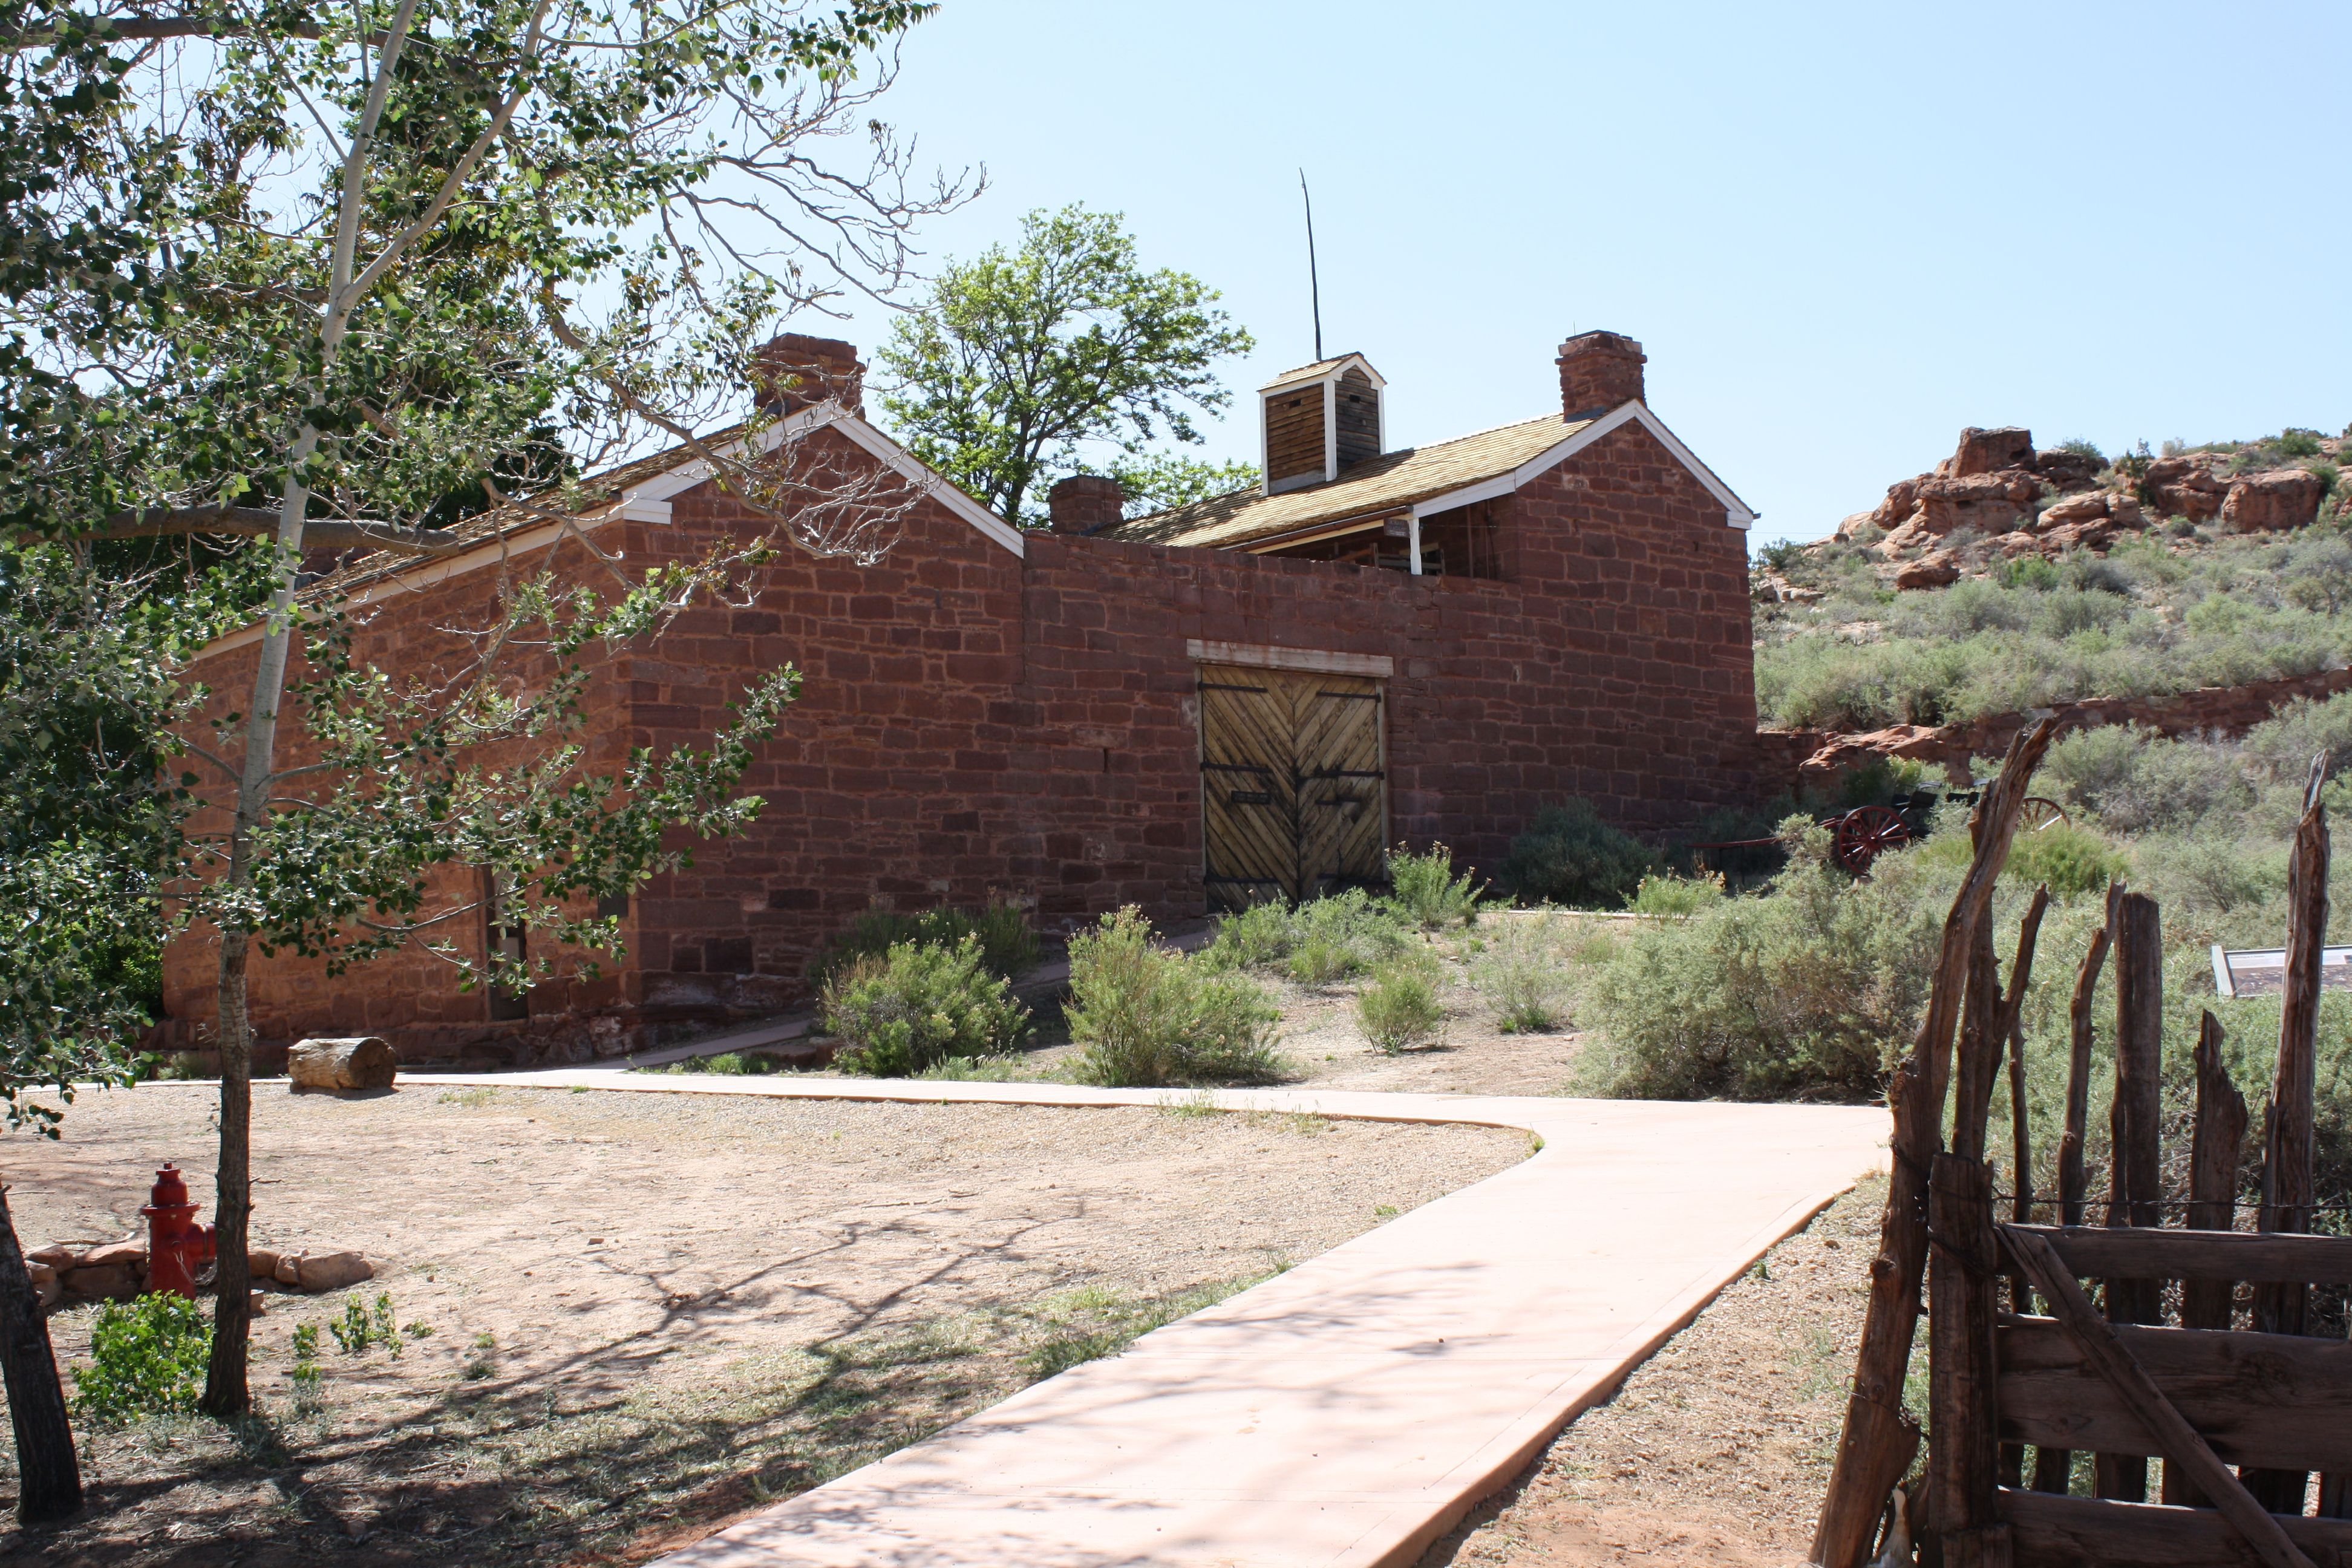 Winsor Castle in Pipe Spring National Monument, Ariz., May 5, 2012| photo by Reuben Wadsworth, St. George News